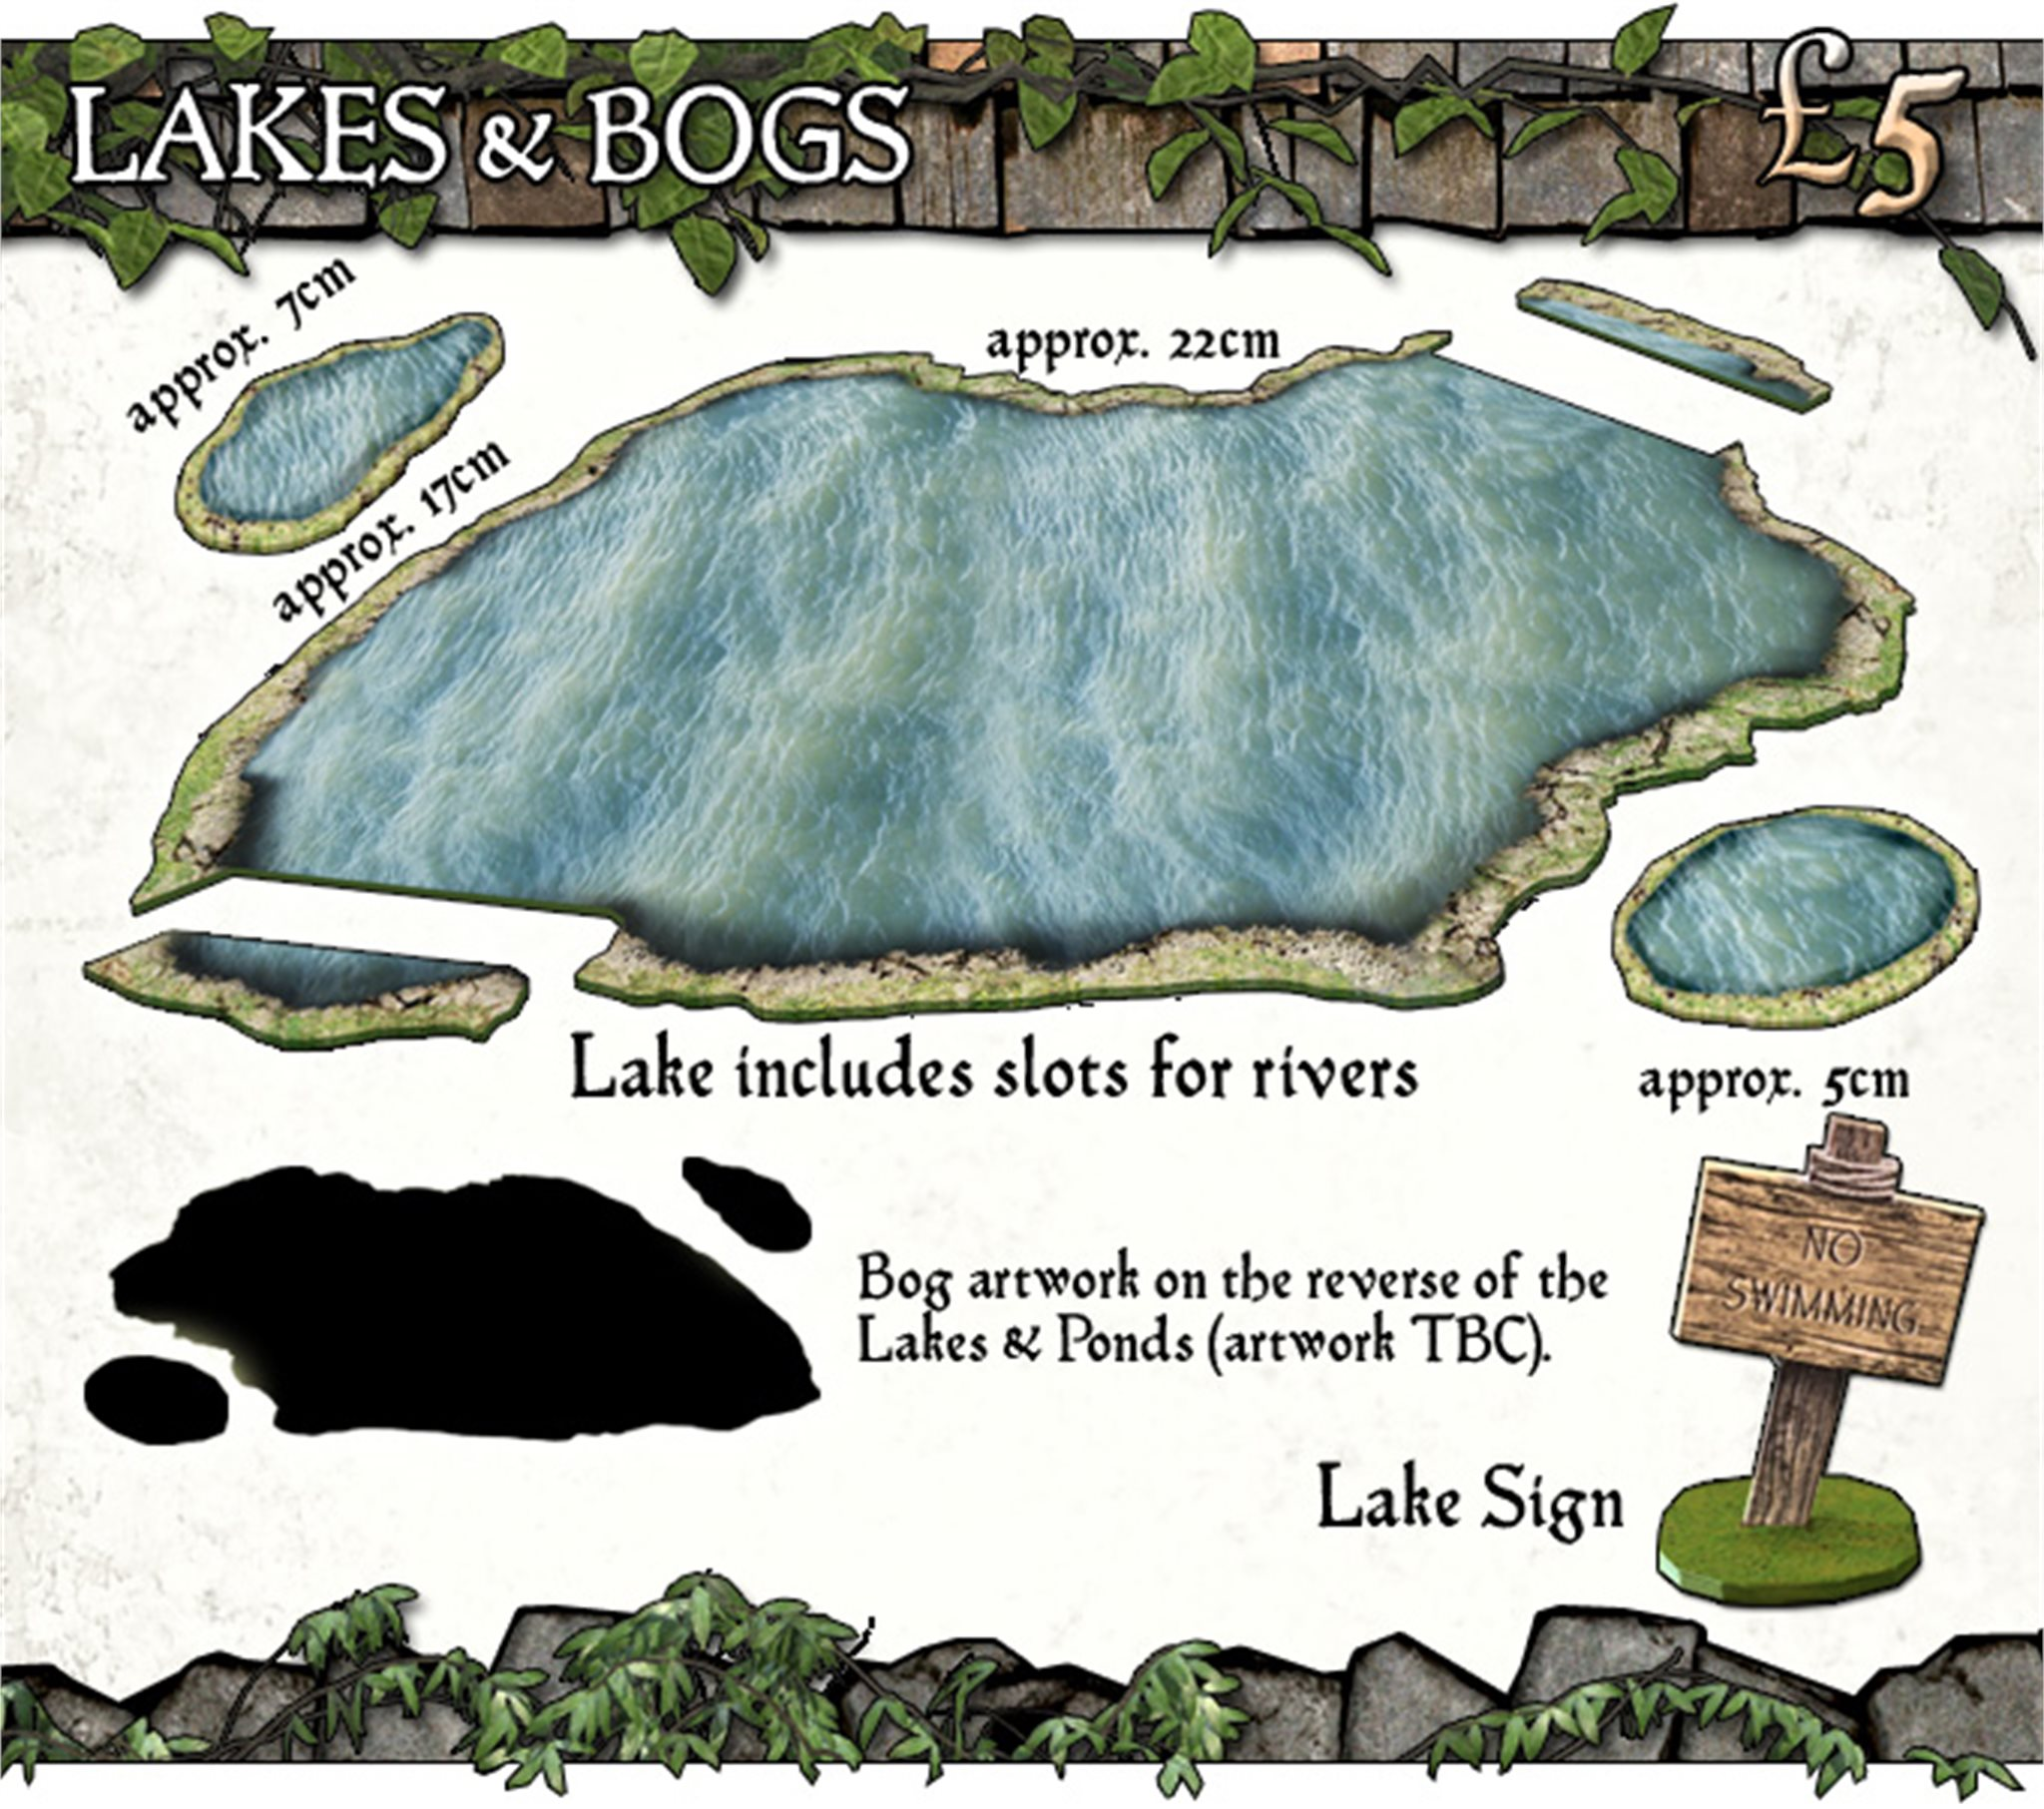 Battle Systems: Lakes & Bogs